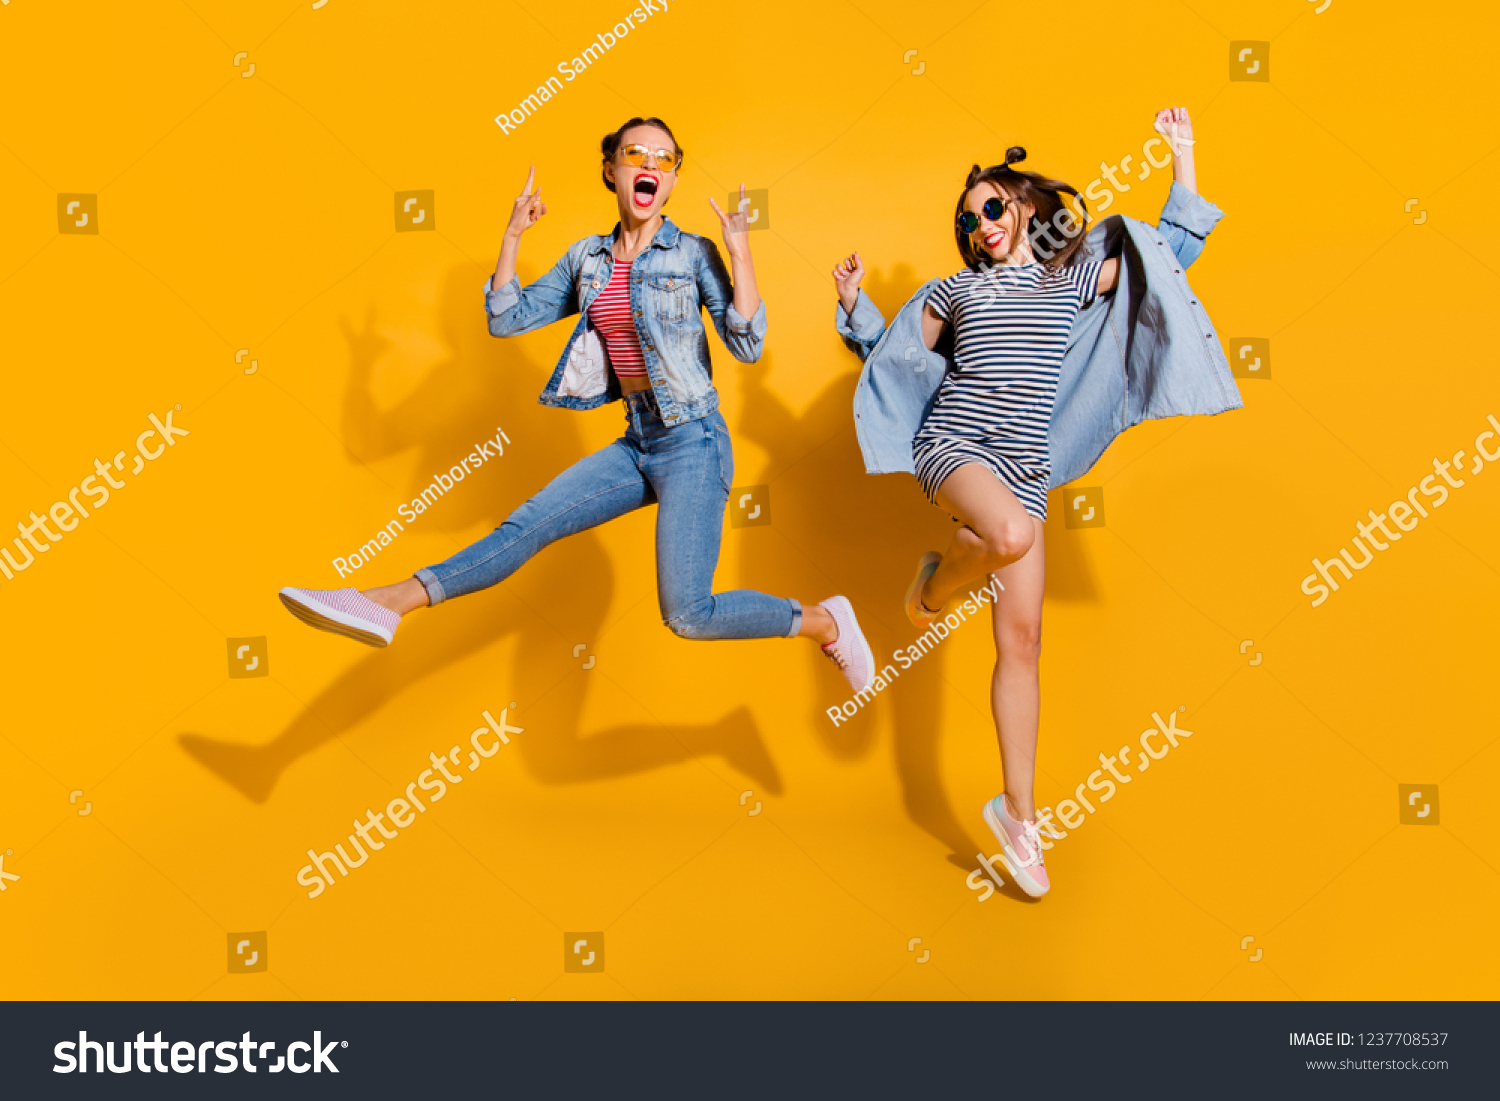 Full legs body size two attractive music lover leisure lifestyle cool lady isolated on yellow vivid background in glasses spectacles dance dancer on concert raised fists up give heavy metal gesture #1237708537